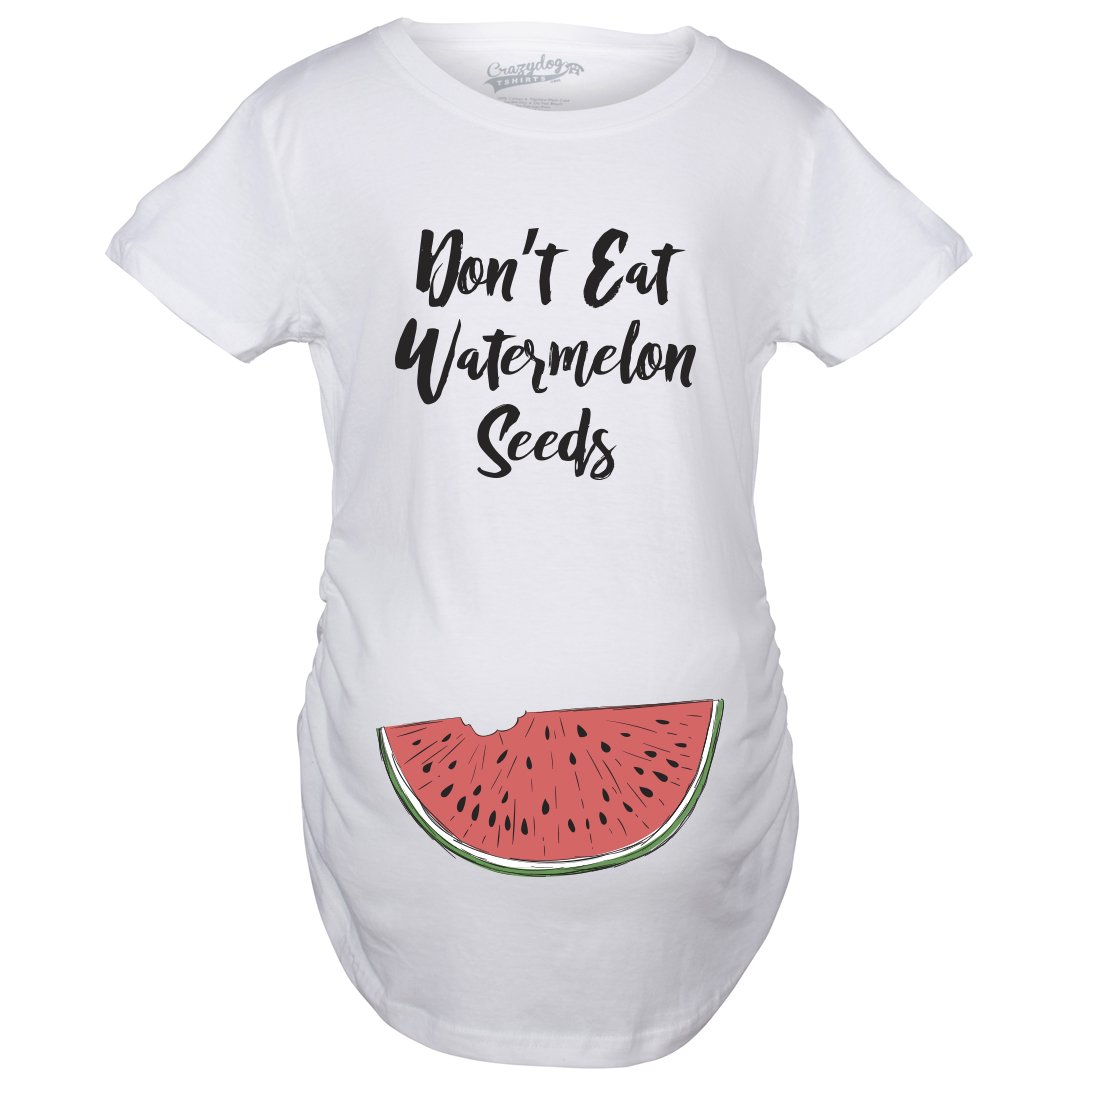 Maternity Don't Eat Watermelon Seeds Tshirt Funny Pregnancy Tee Crazy Dog Tshirts 017DontEatMelonSeedsMAT